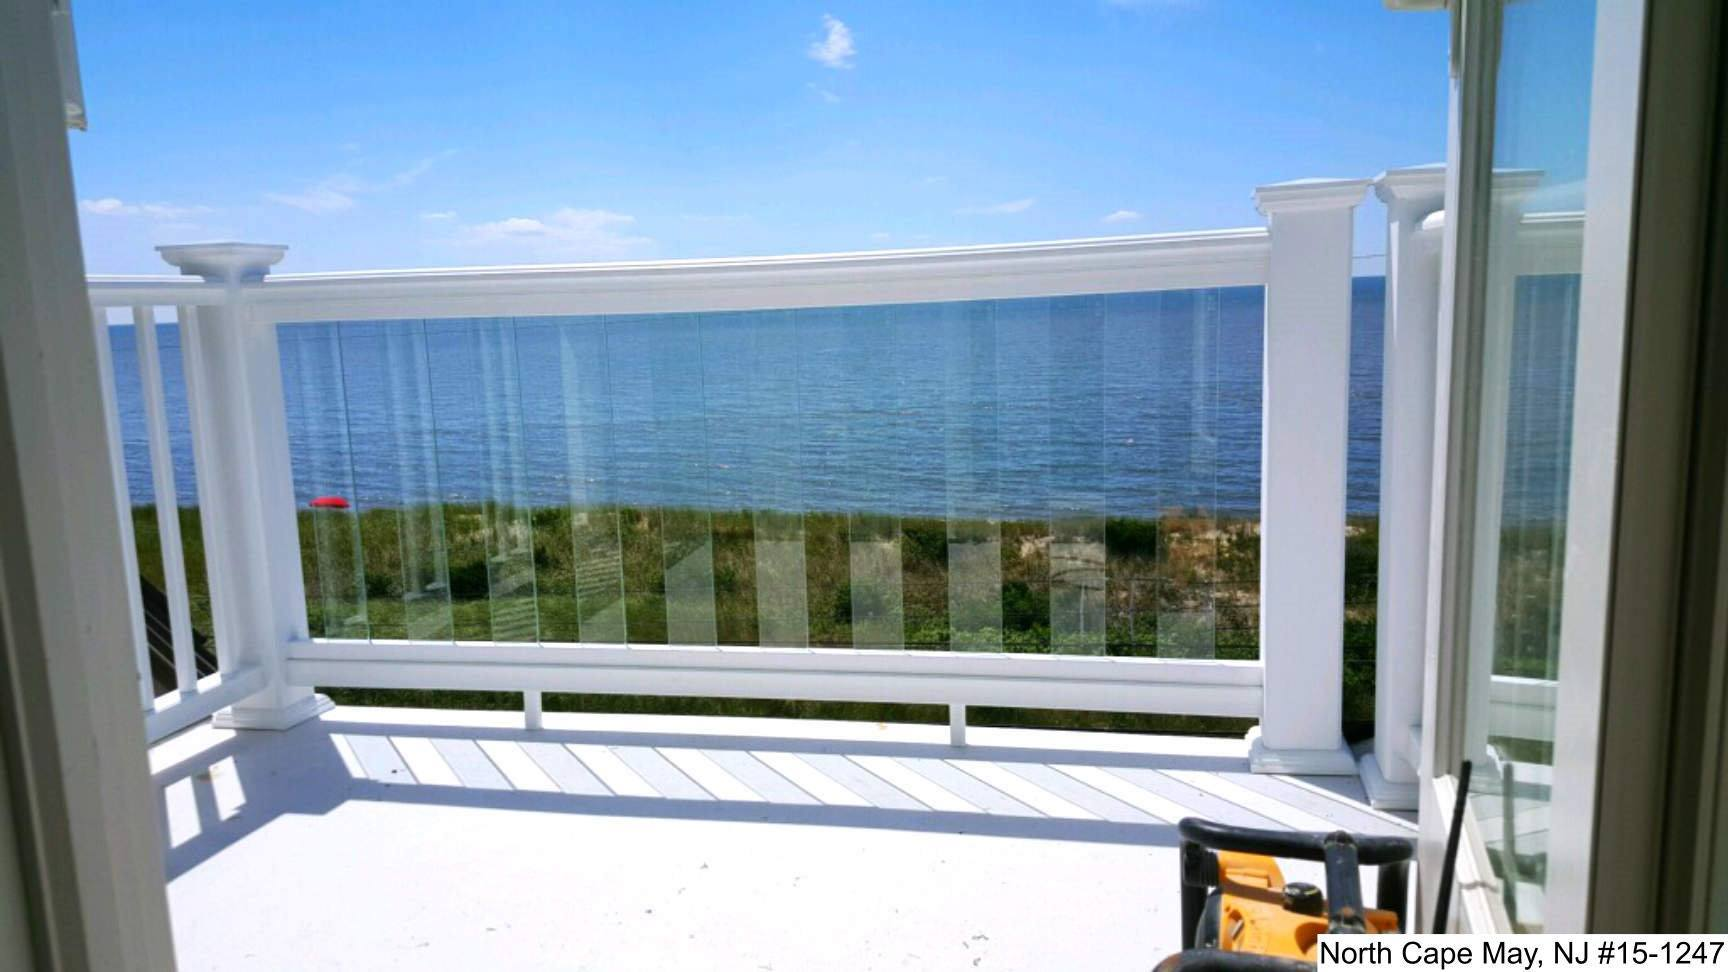 Glass Panel Vinyl Railing installed on a balcony